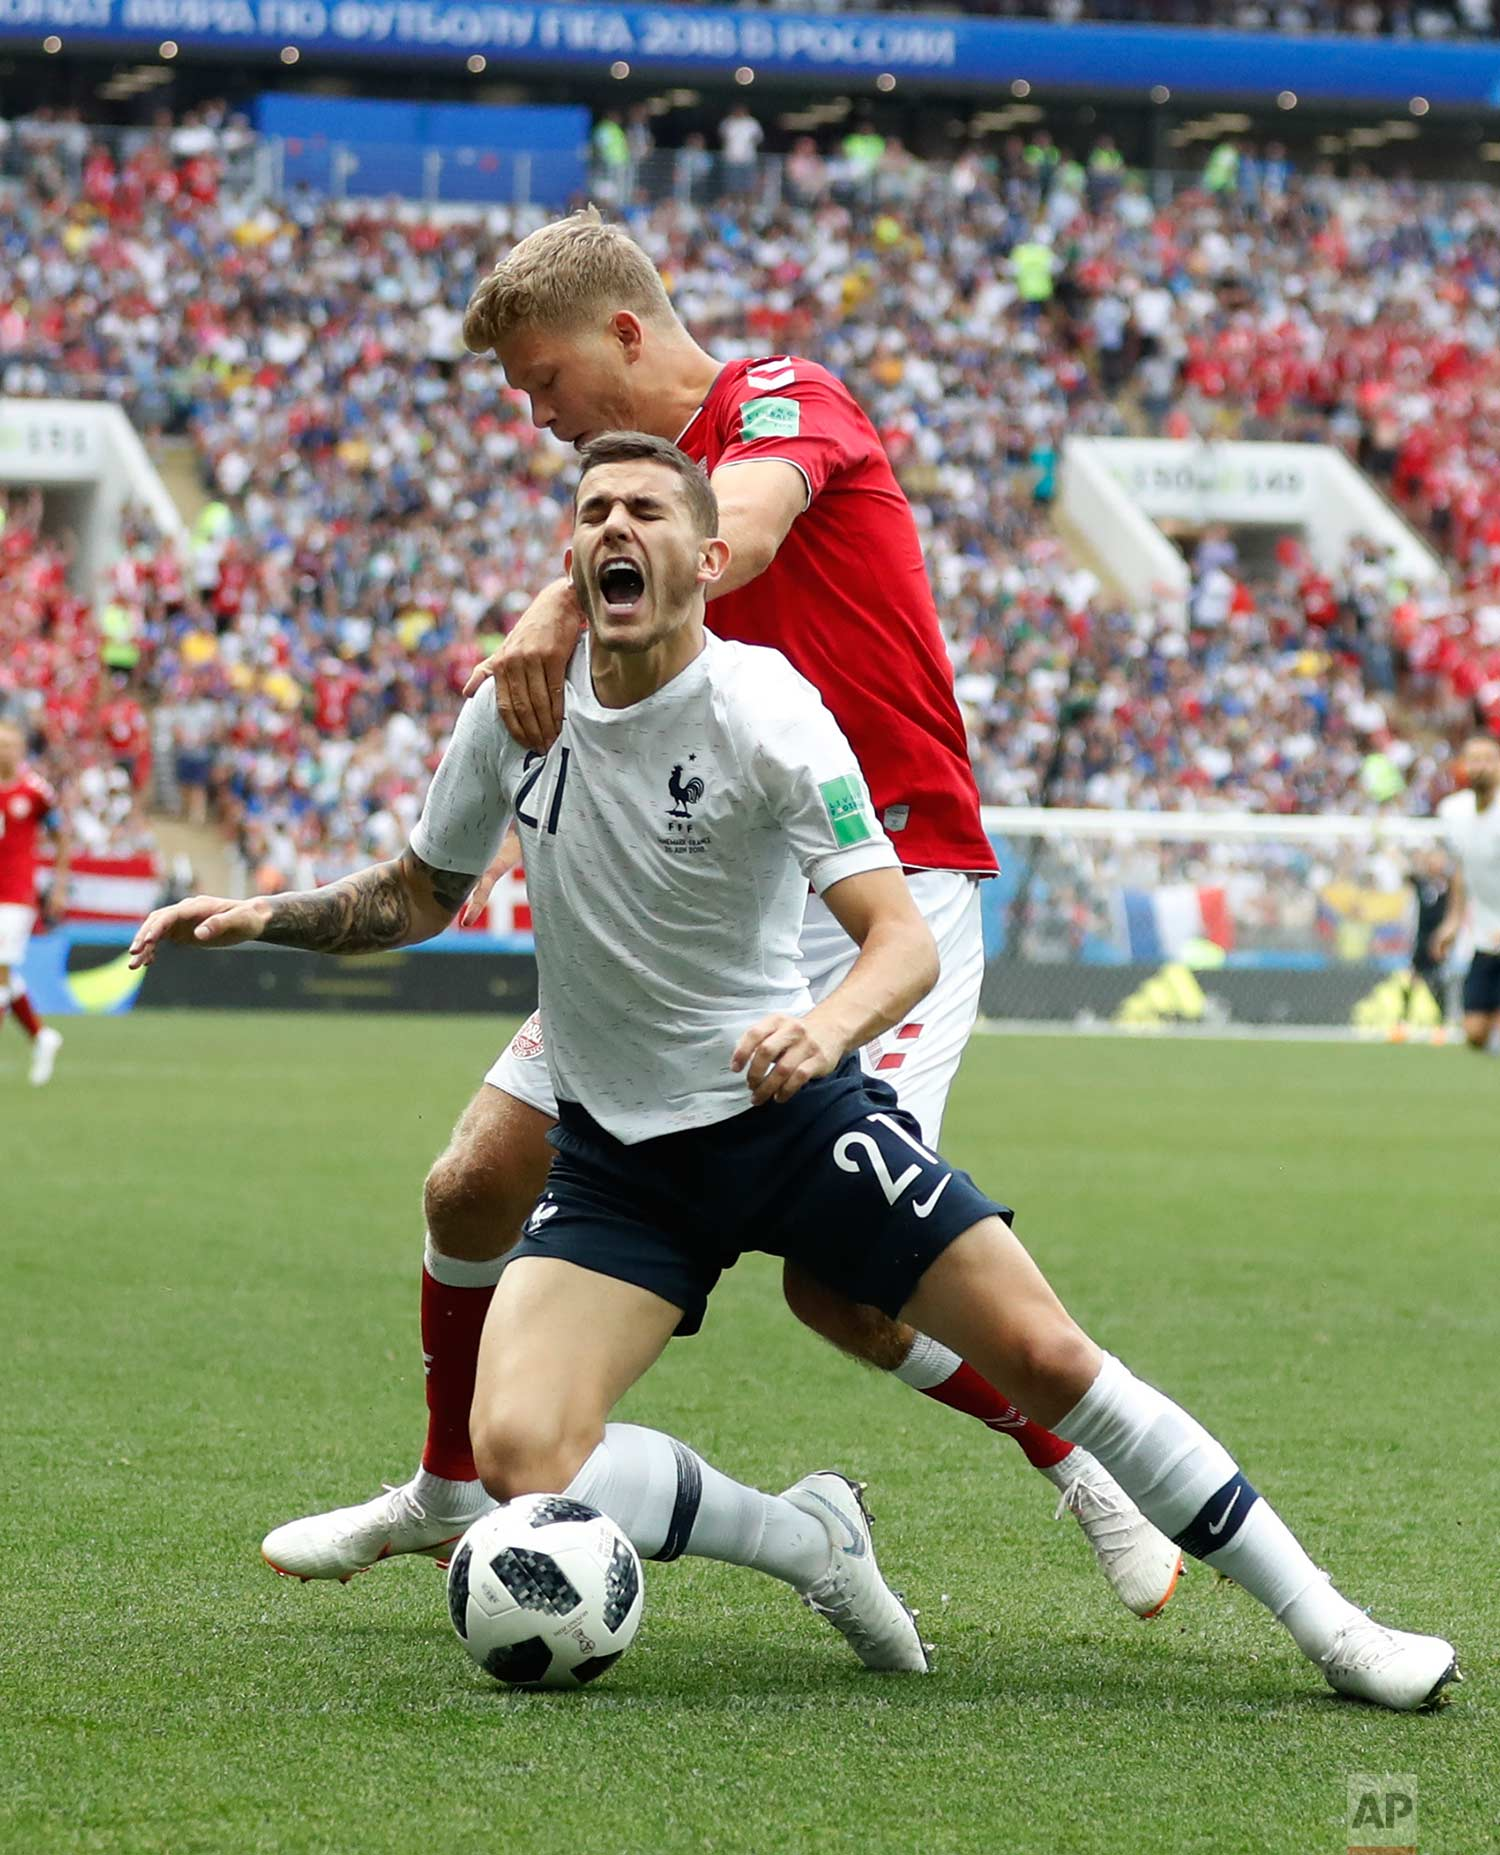 Denmark's Andreas Cornelius, top, vies for the ball with France's Lucas Hernandez during the group C match between Denmark and France at the 2018 soccer World Cup at the Luzhniki Stadium in Moscow, Russia, Tuesday, June 26, 2018. (AP Photo/Antonio Calanni)